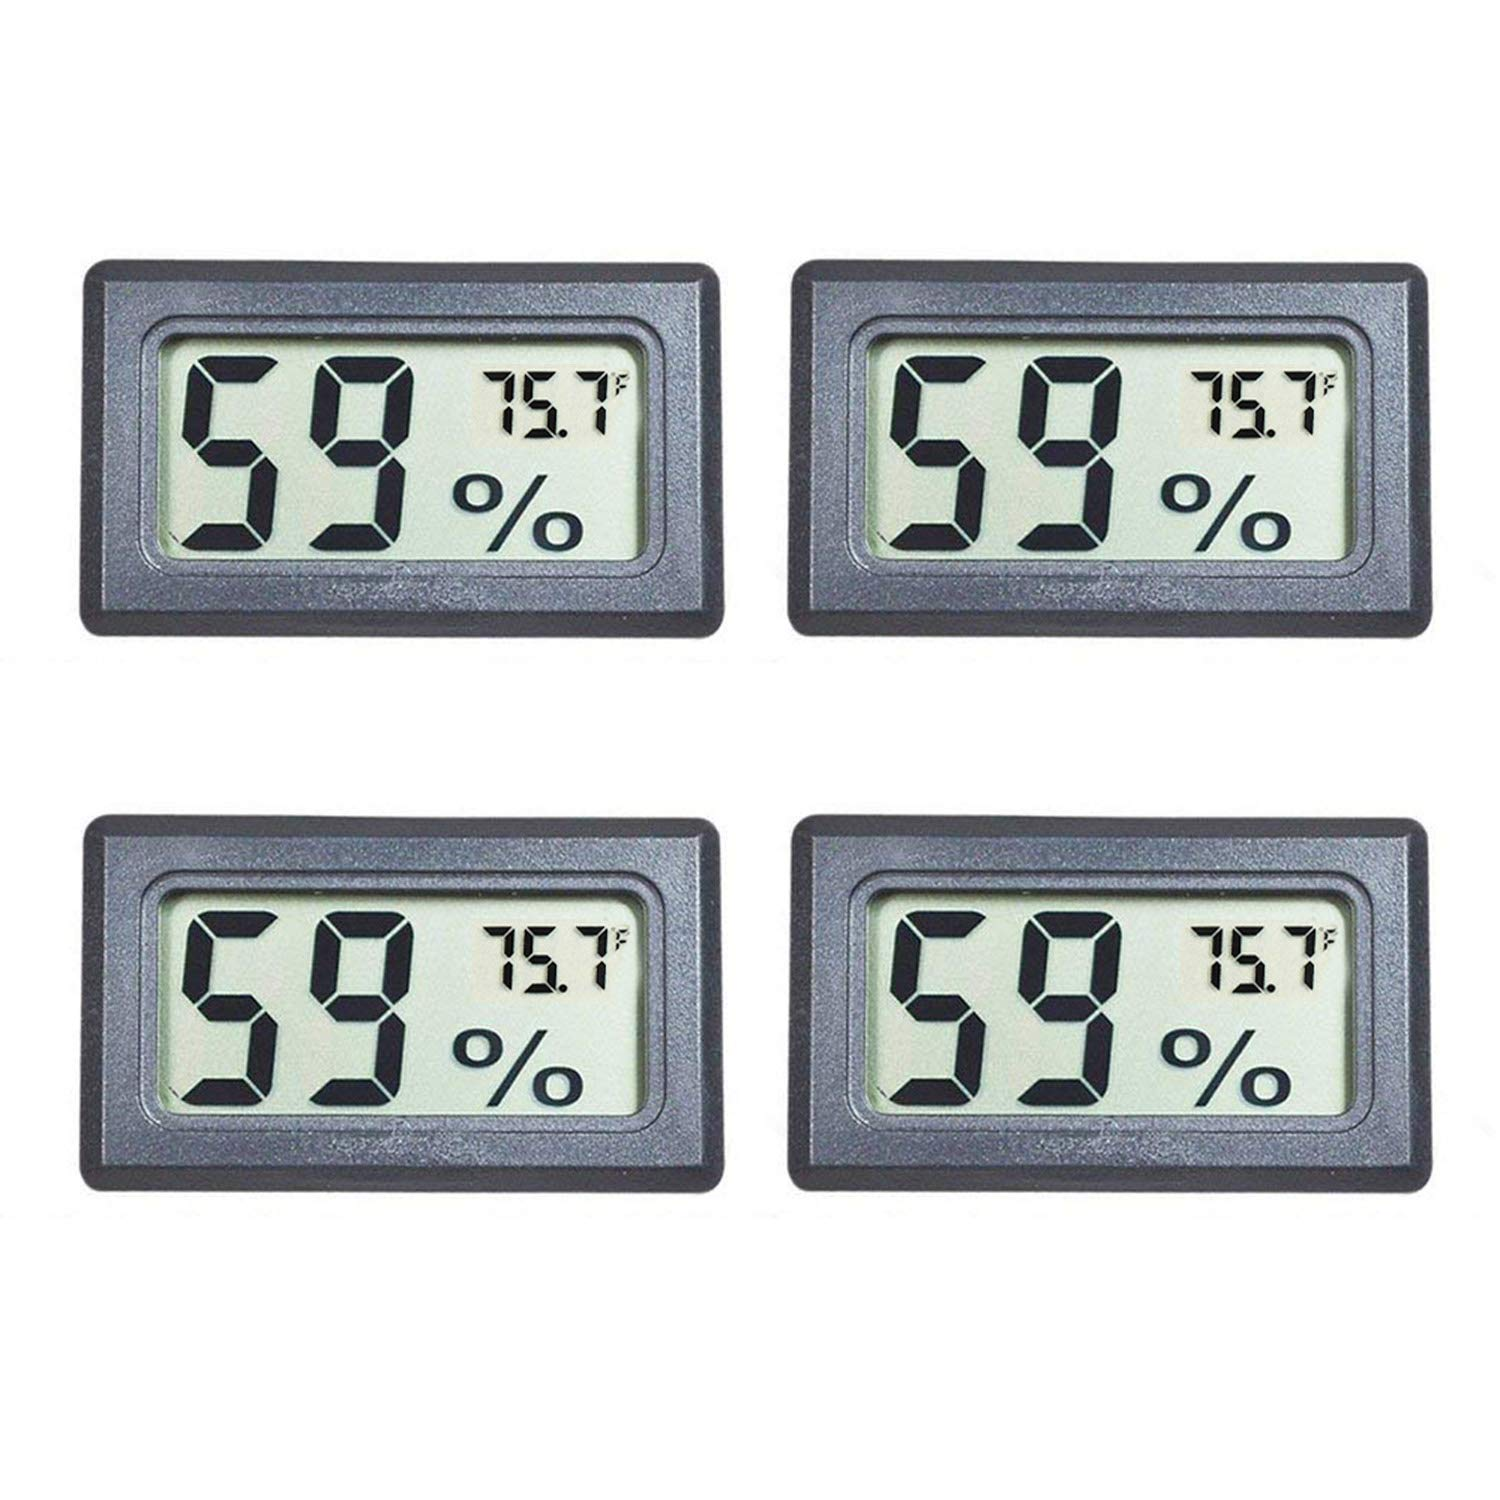 Veanic 4-pack Mini Digital Electronic Temperature Humidity Meters Gauge Indoor Thermometer Hygrometer LCD Display for Humidors Home Humidifiers Car Greenhouse Babyroom